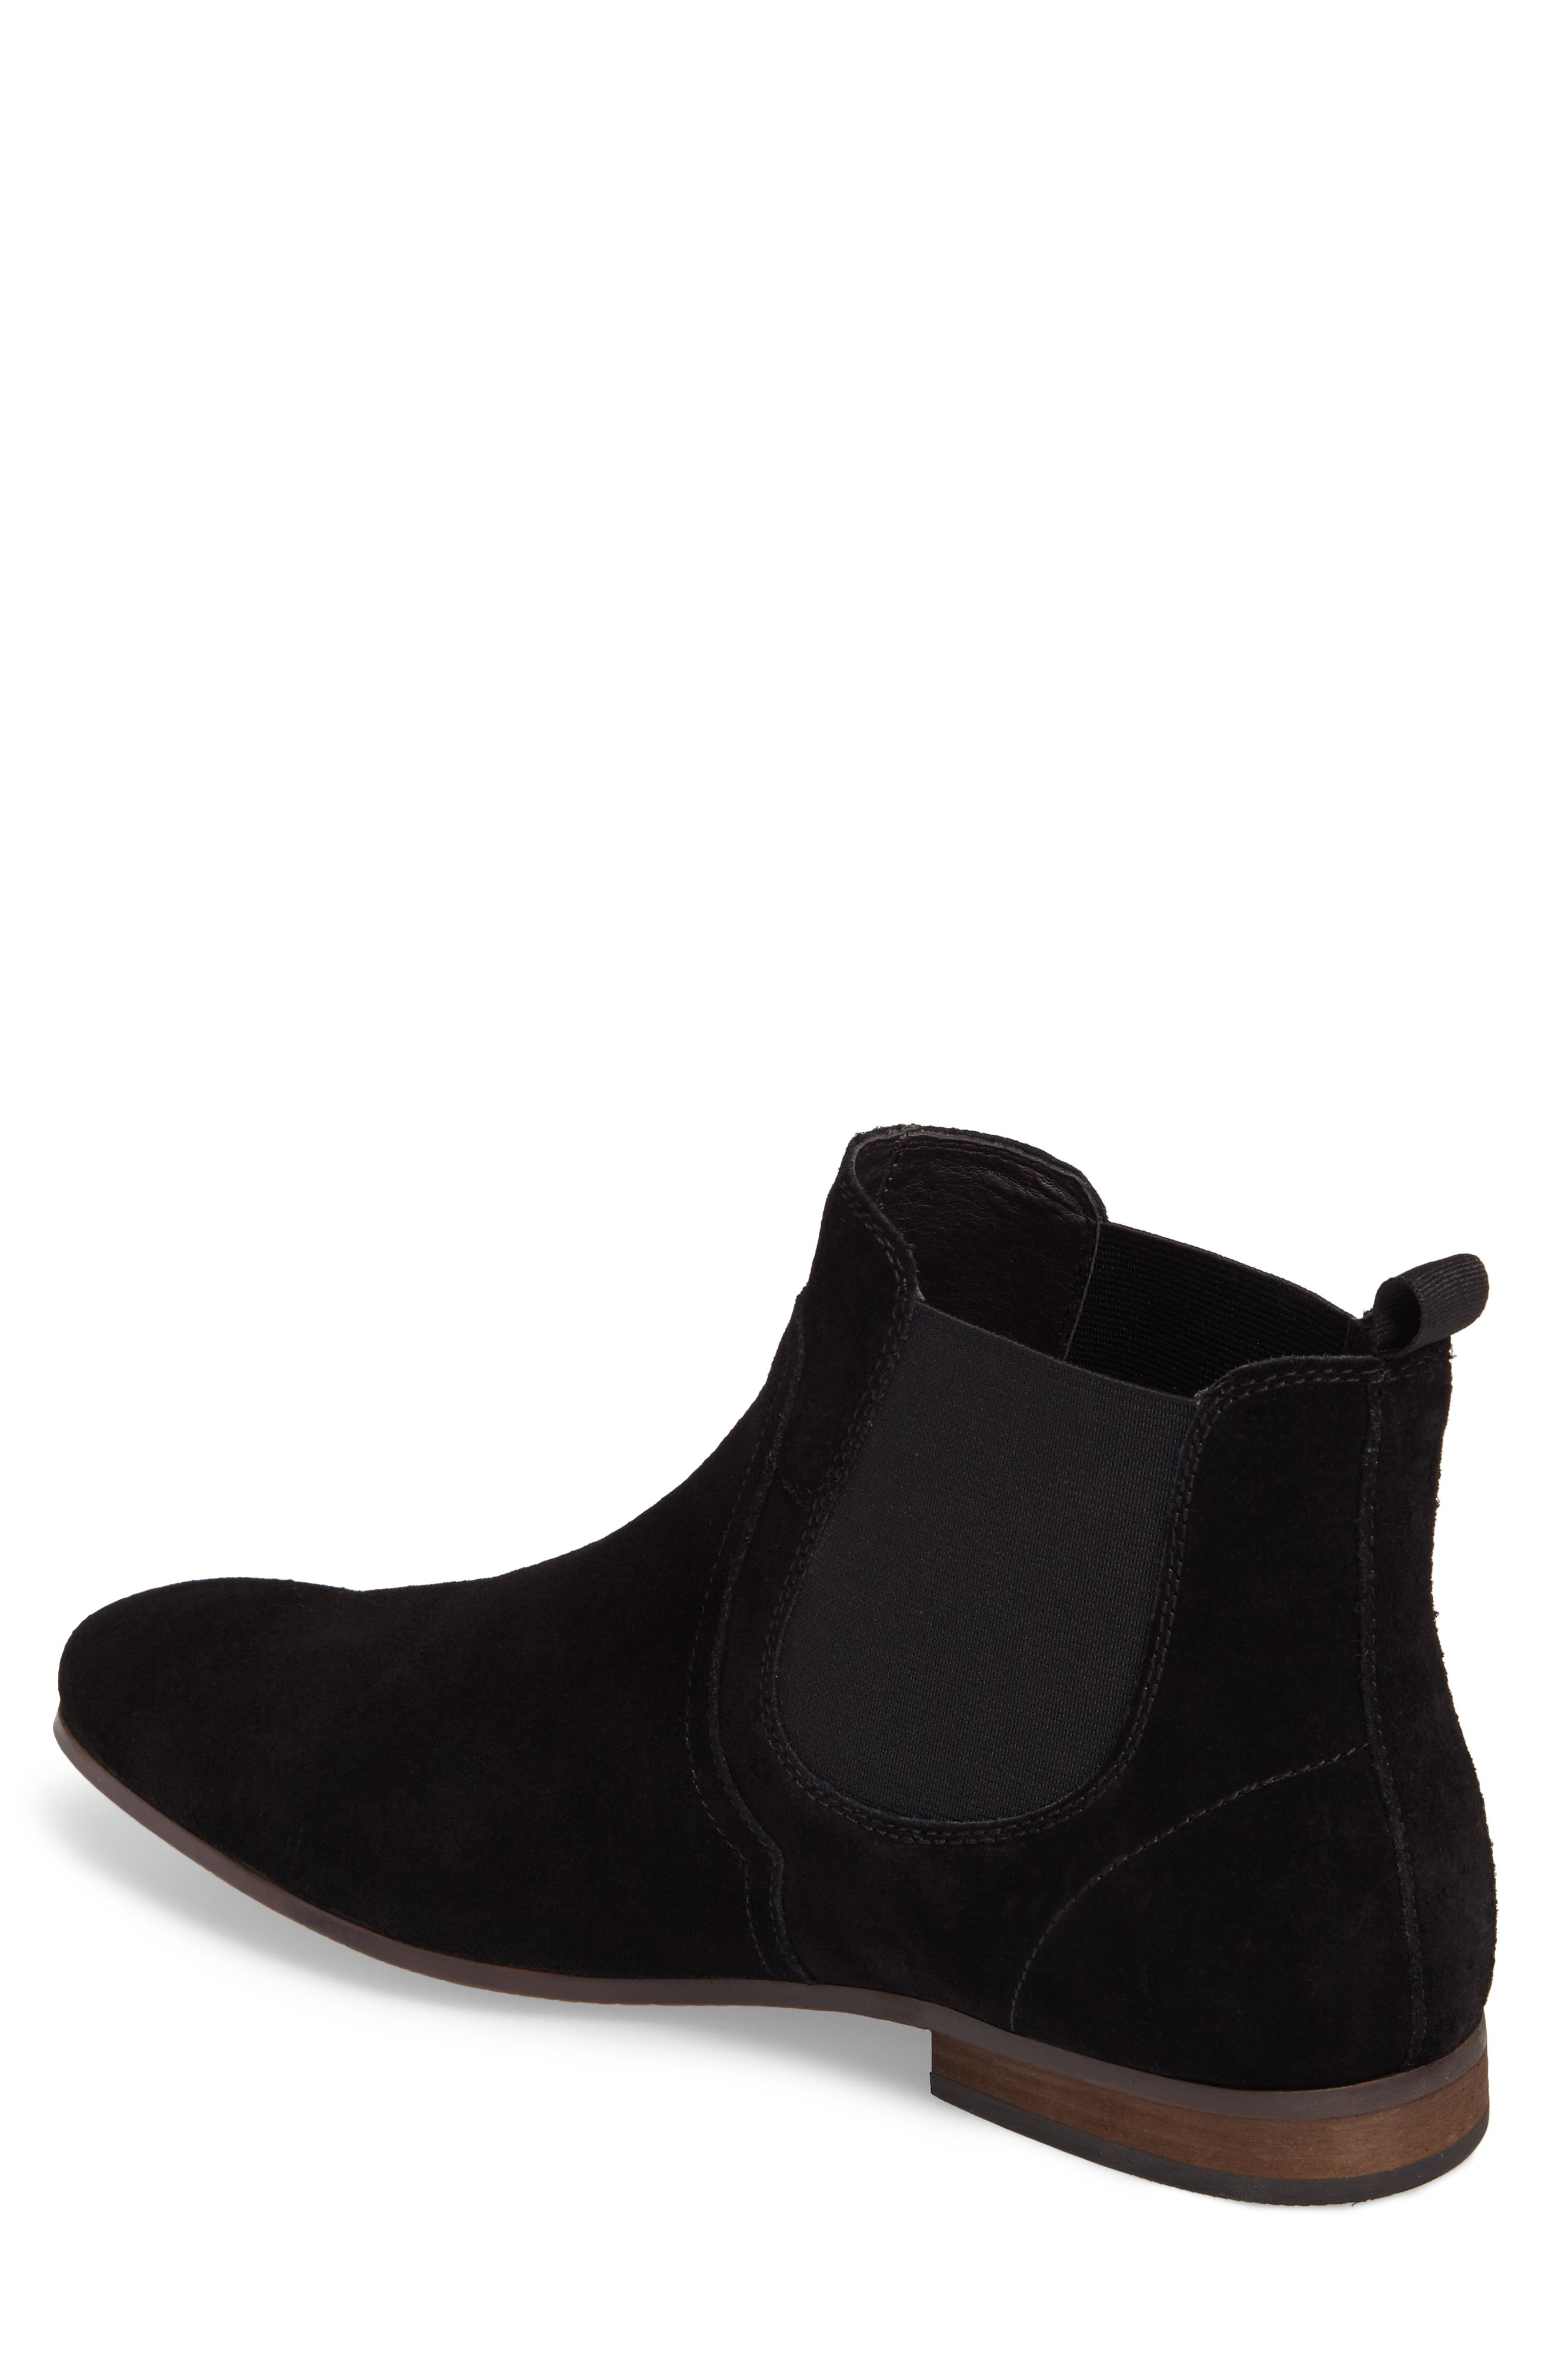 Brysen Chelsea Boot,                             Alternate thumbnail 24, color,